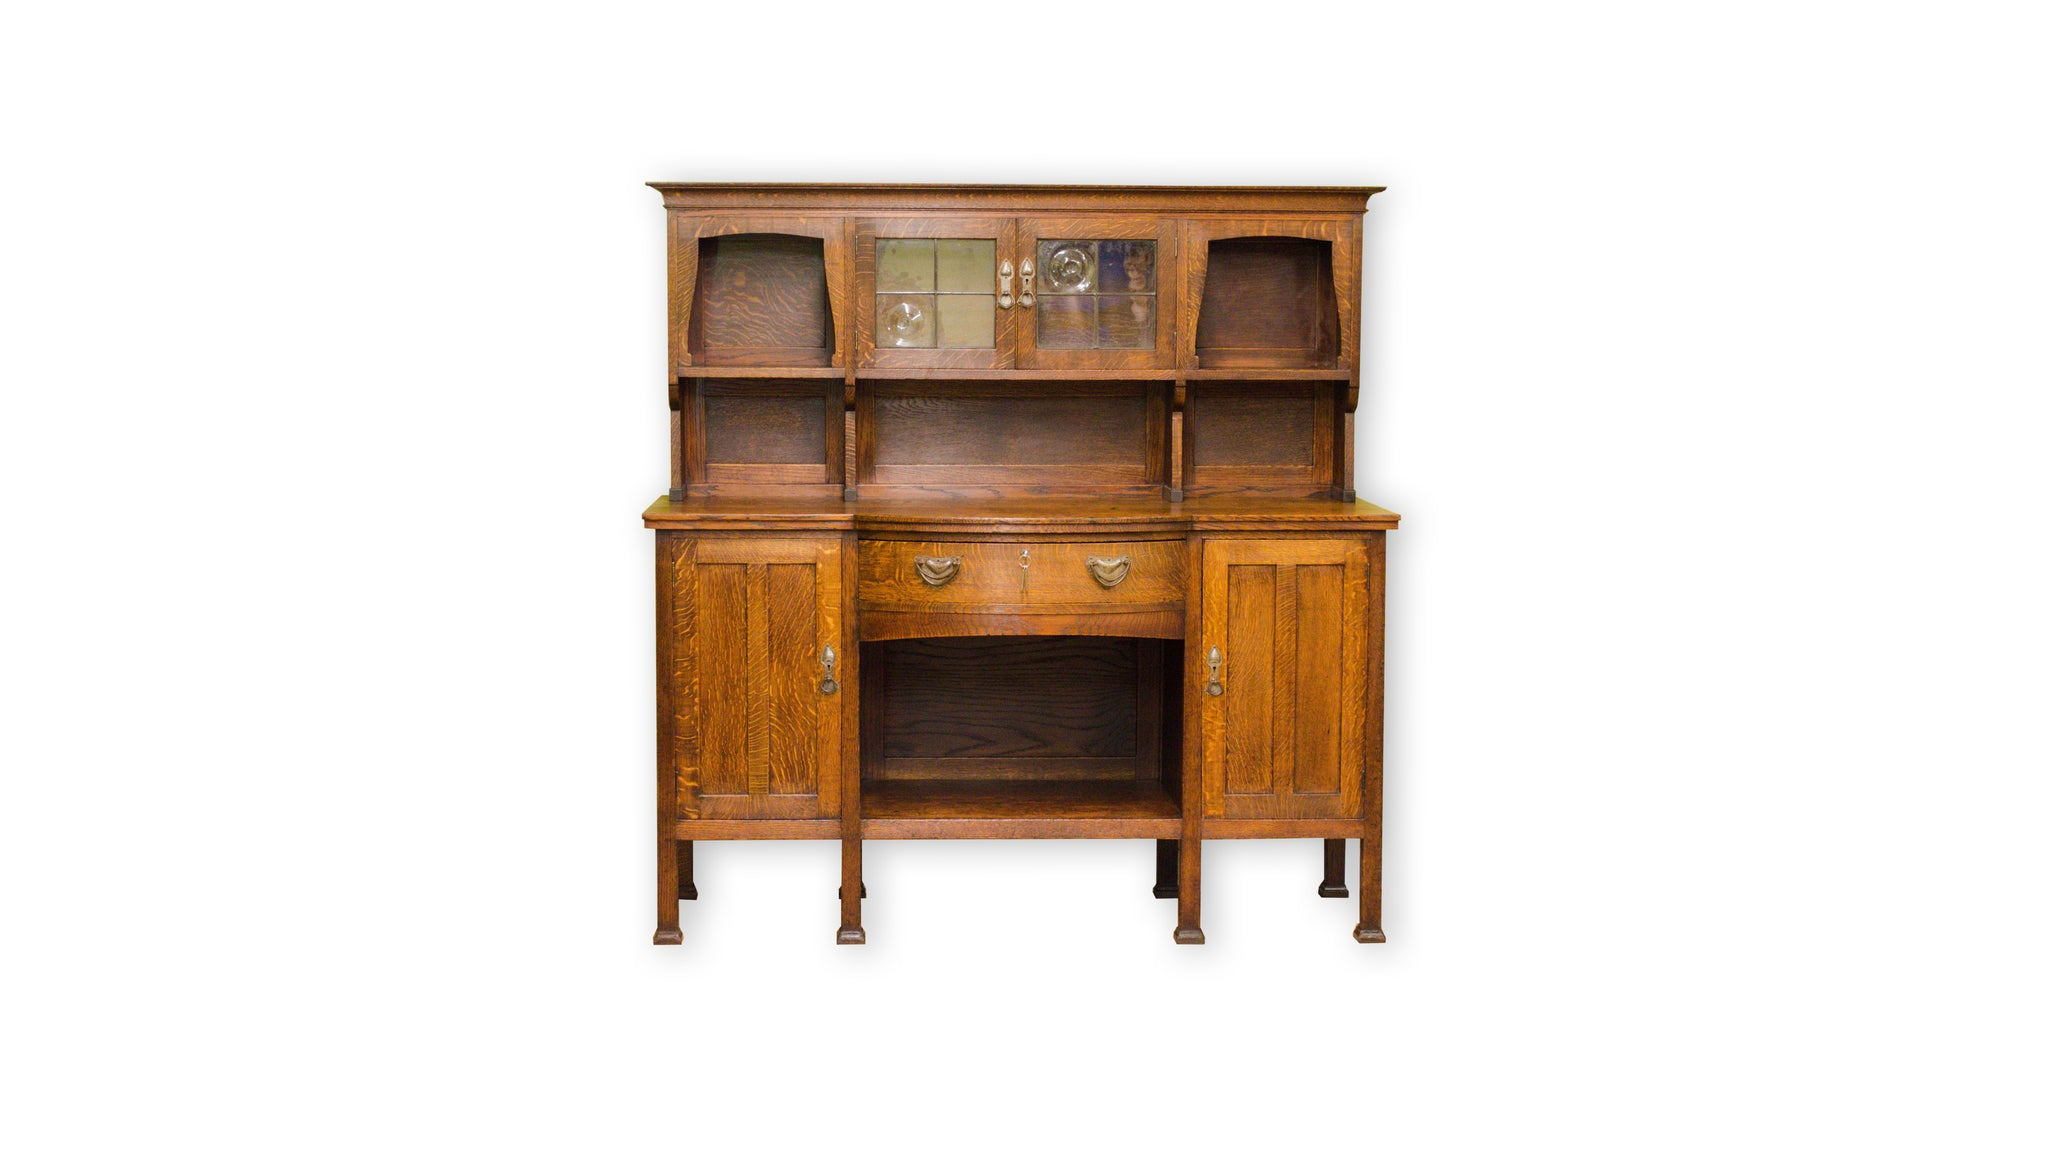 Arts & Crafts Furniture by Liberty & Co.